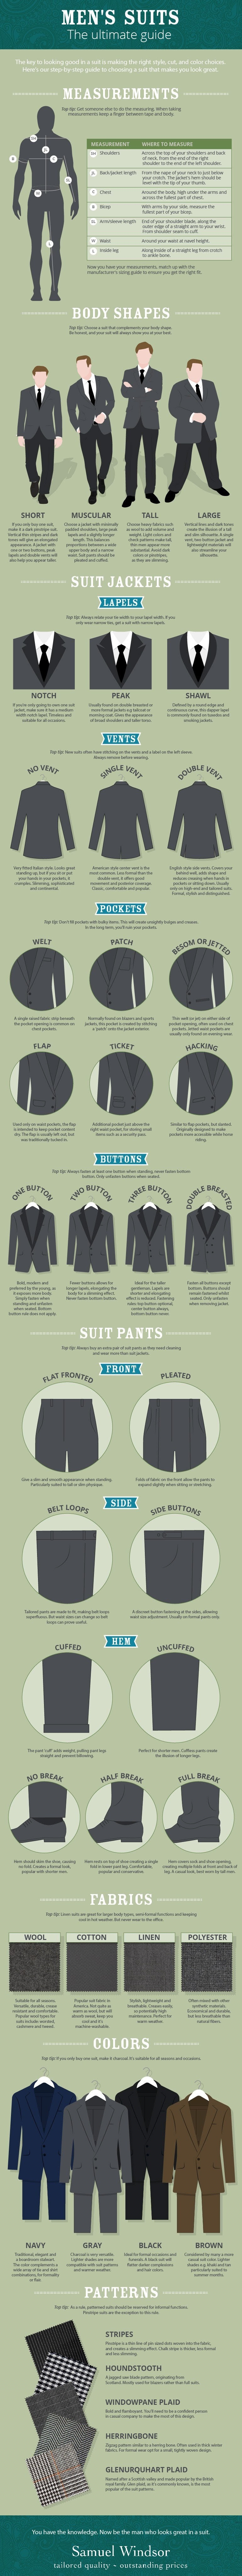 Men's suits – the ultimate guide #infographic